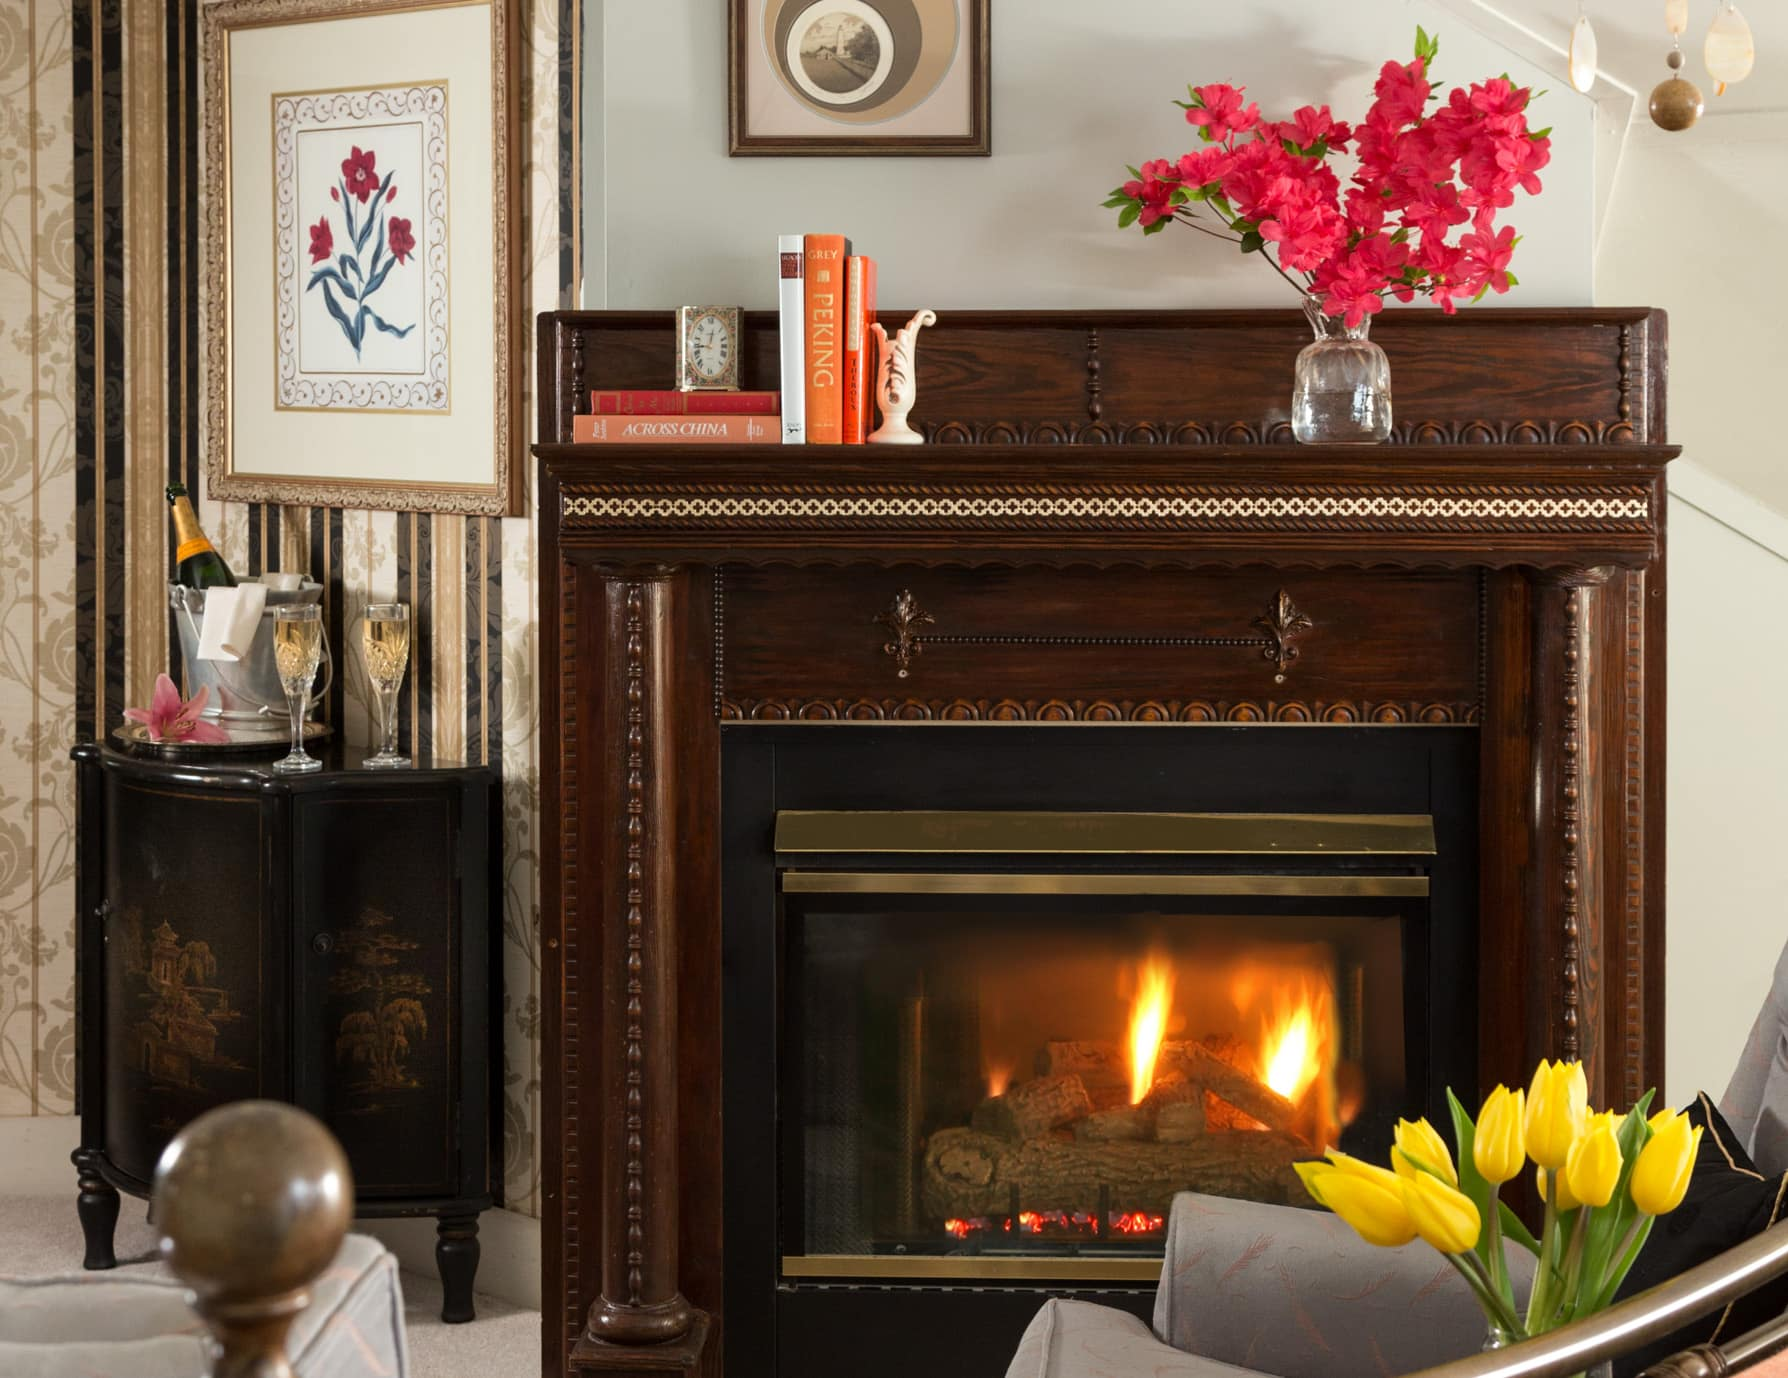 Cozy Gas Fireplace at Our Inn in Manteo, North Carolina